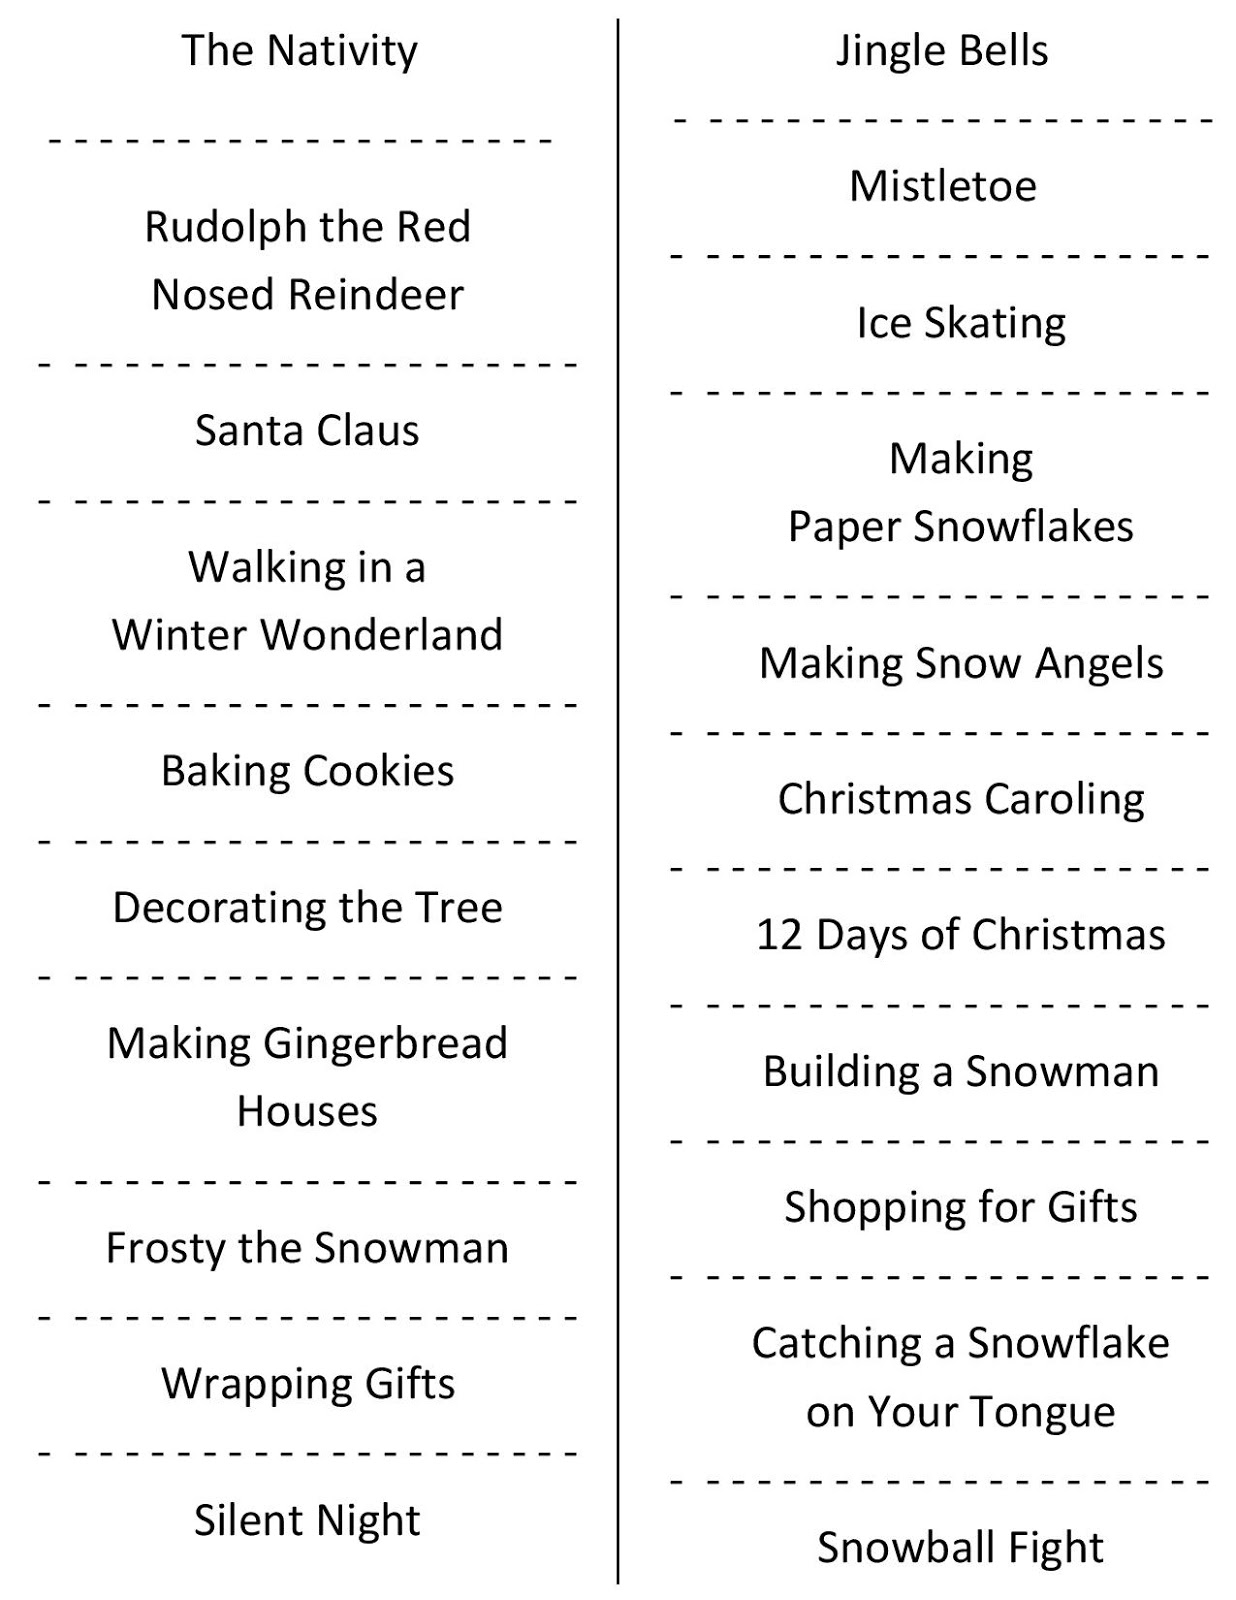 photograph relating to Words to 12 Days of Christmas Printable known as Xmas Charades (free of charge printable social gathering video game)